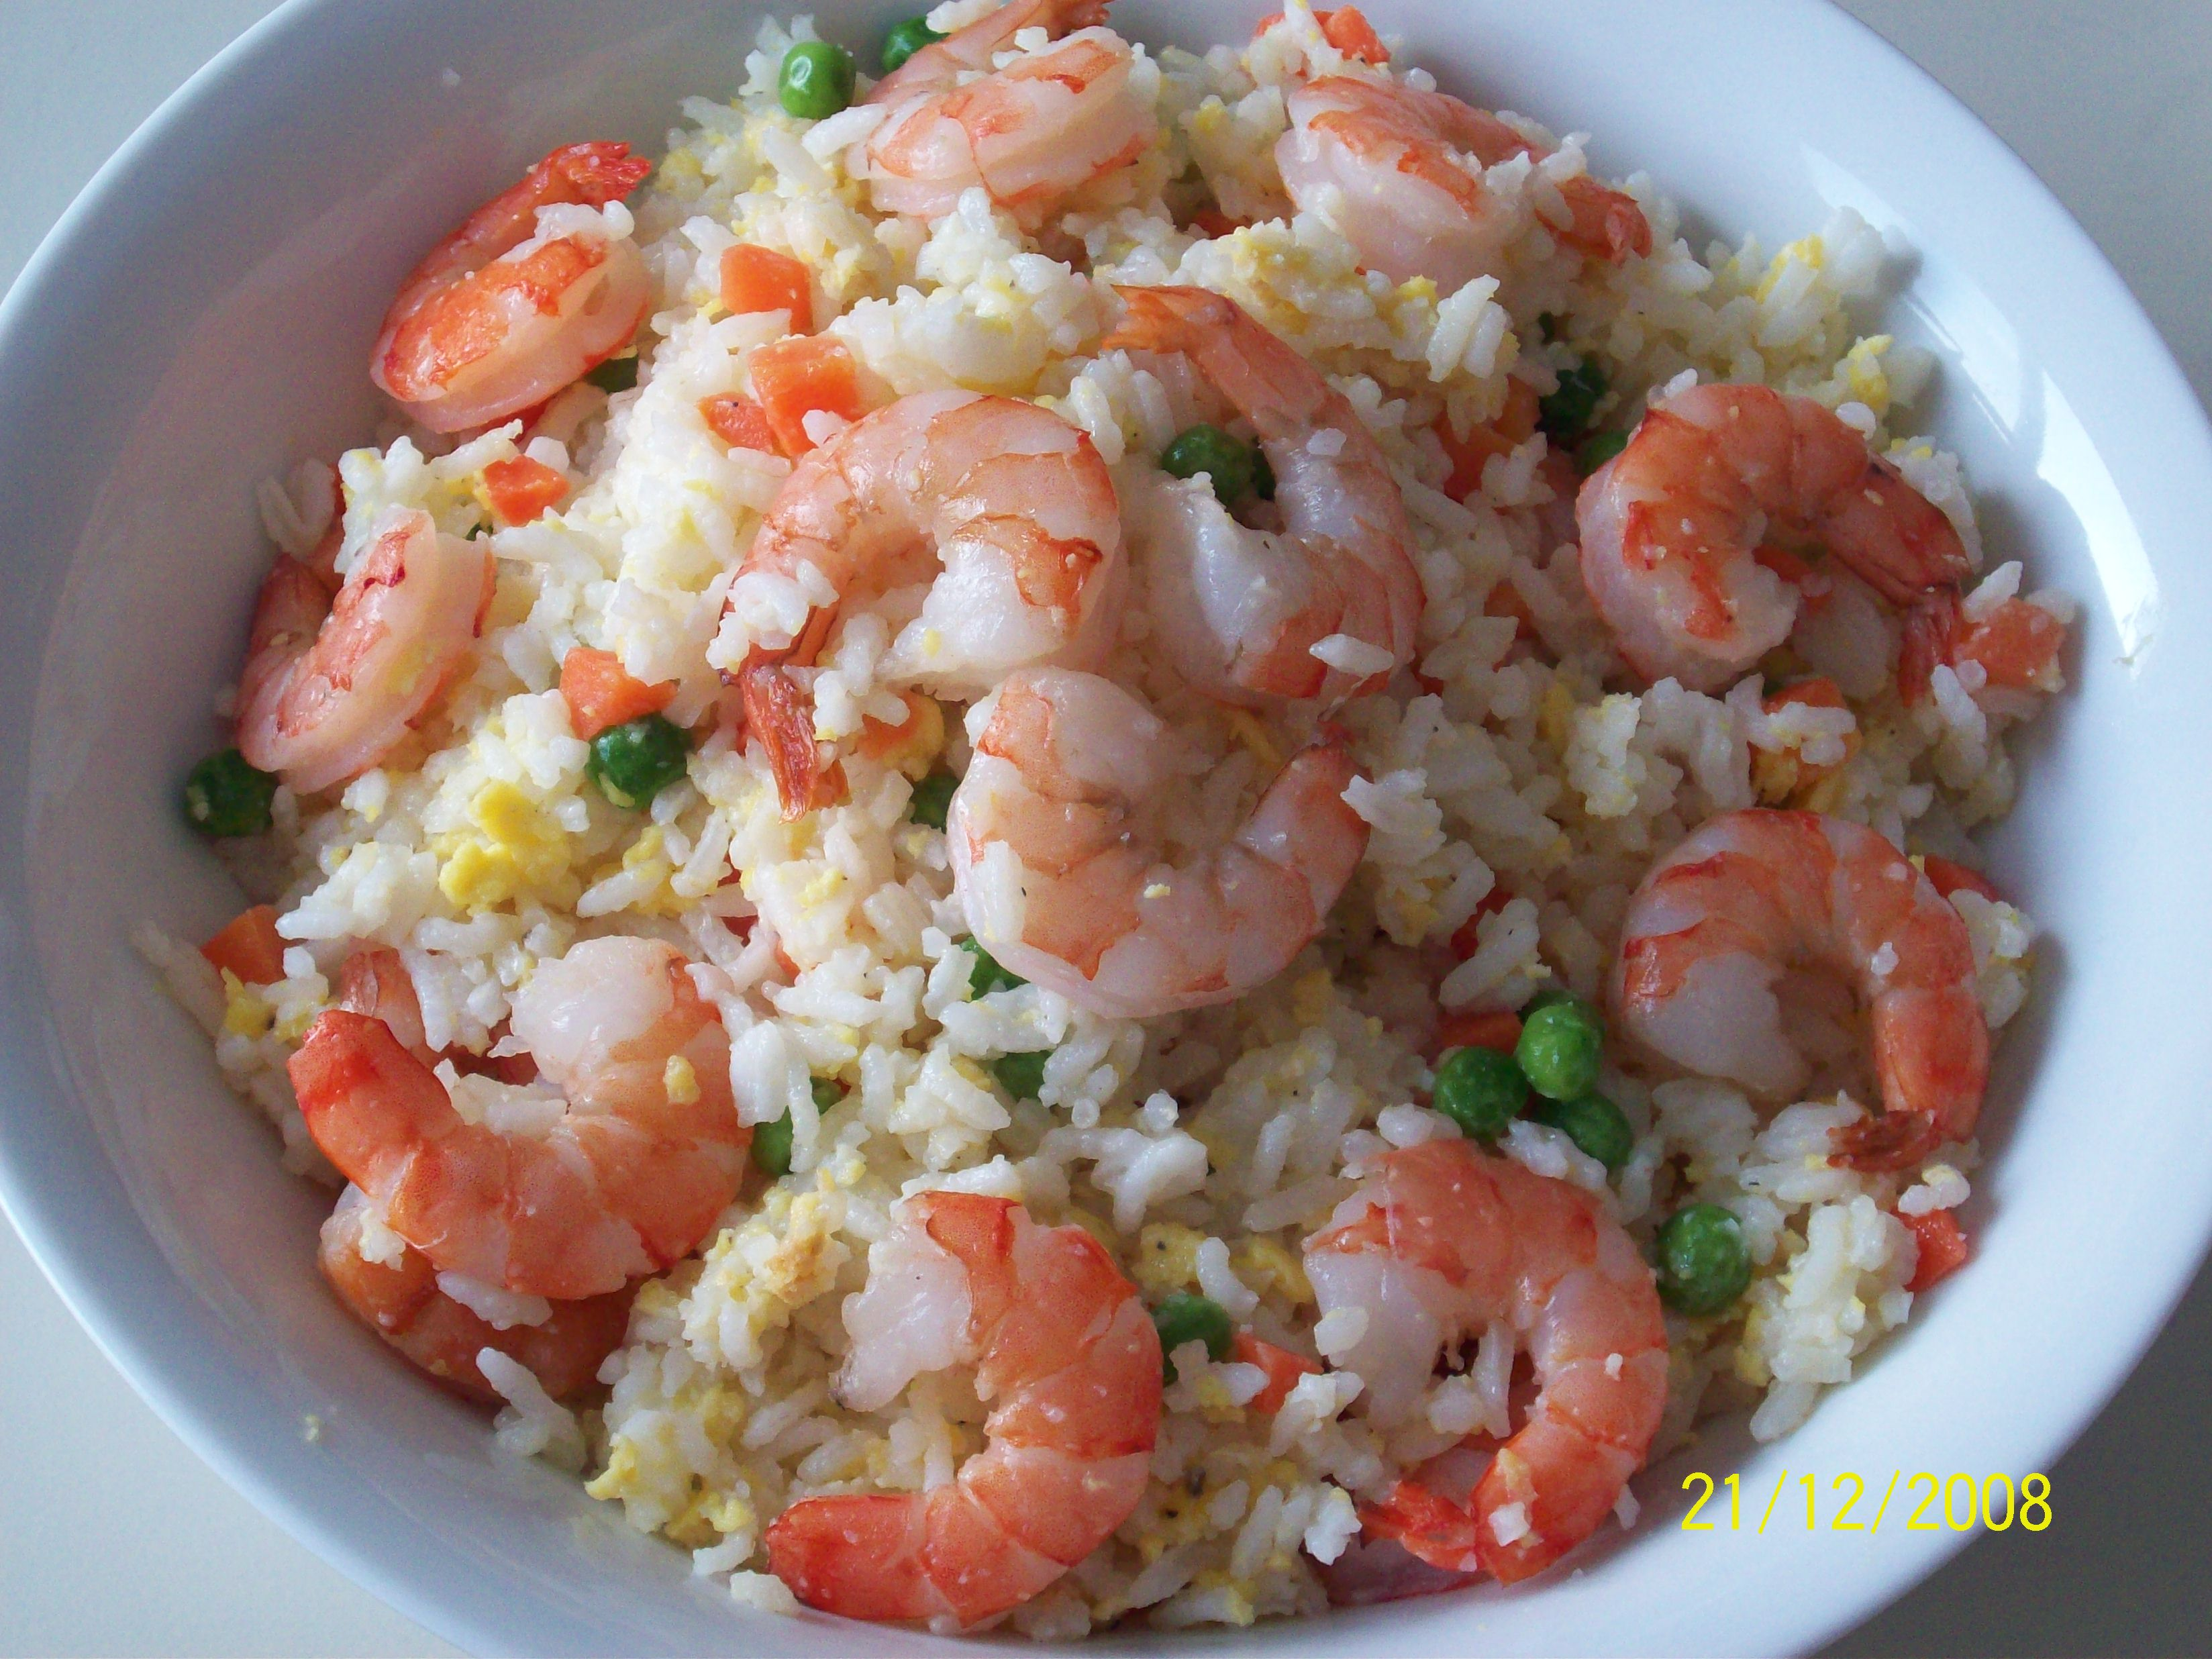 http://foodloader.net/cutie_2008-12-22_Fried_Rice.jpg